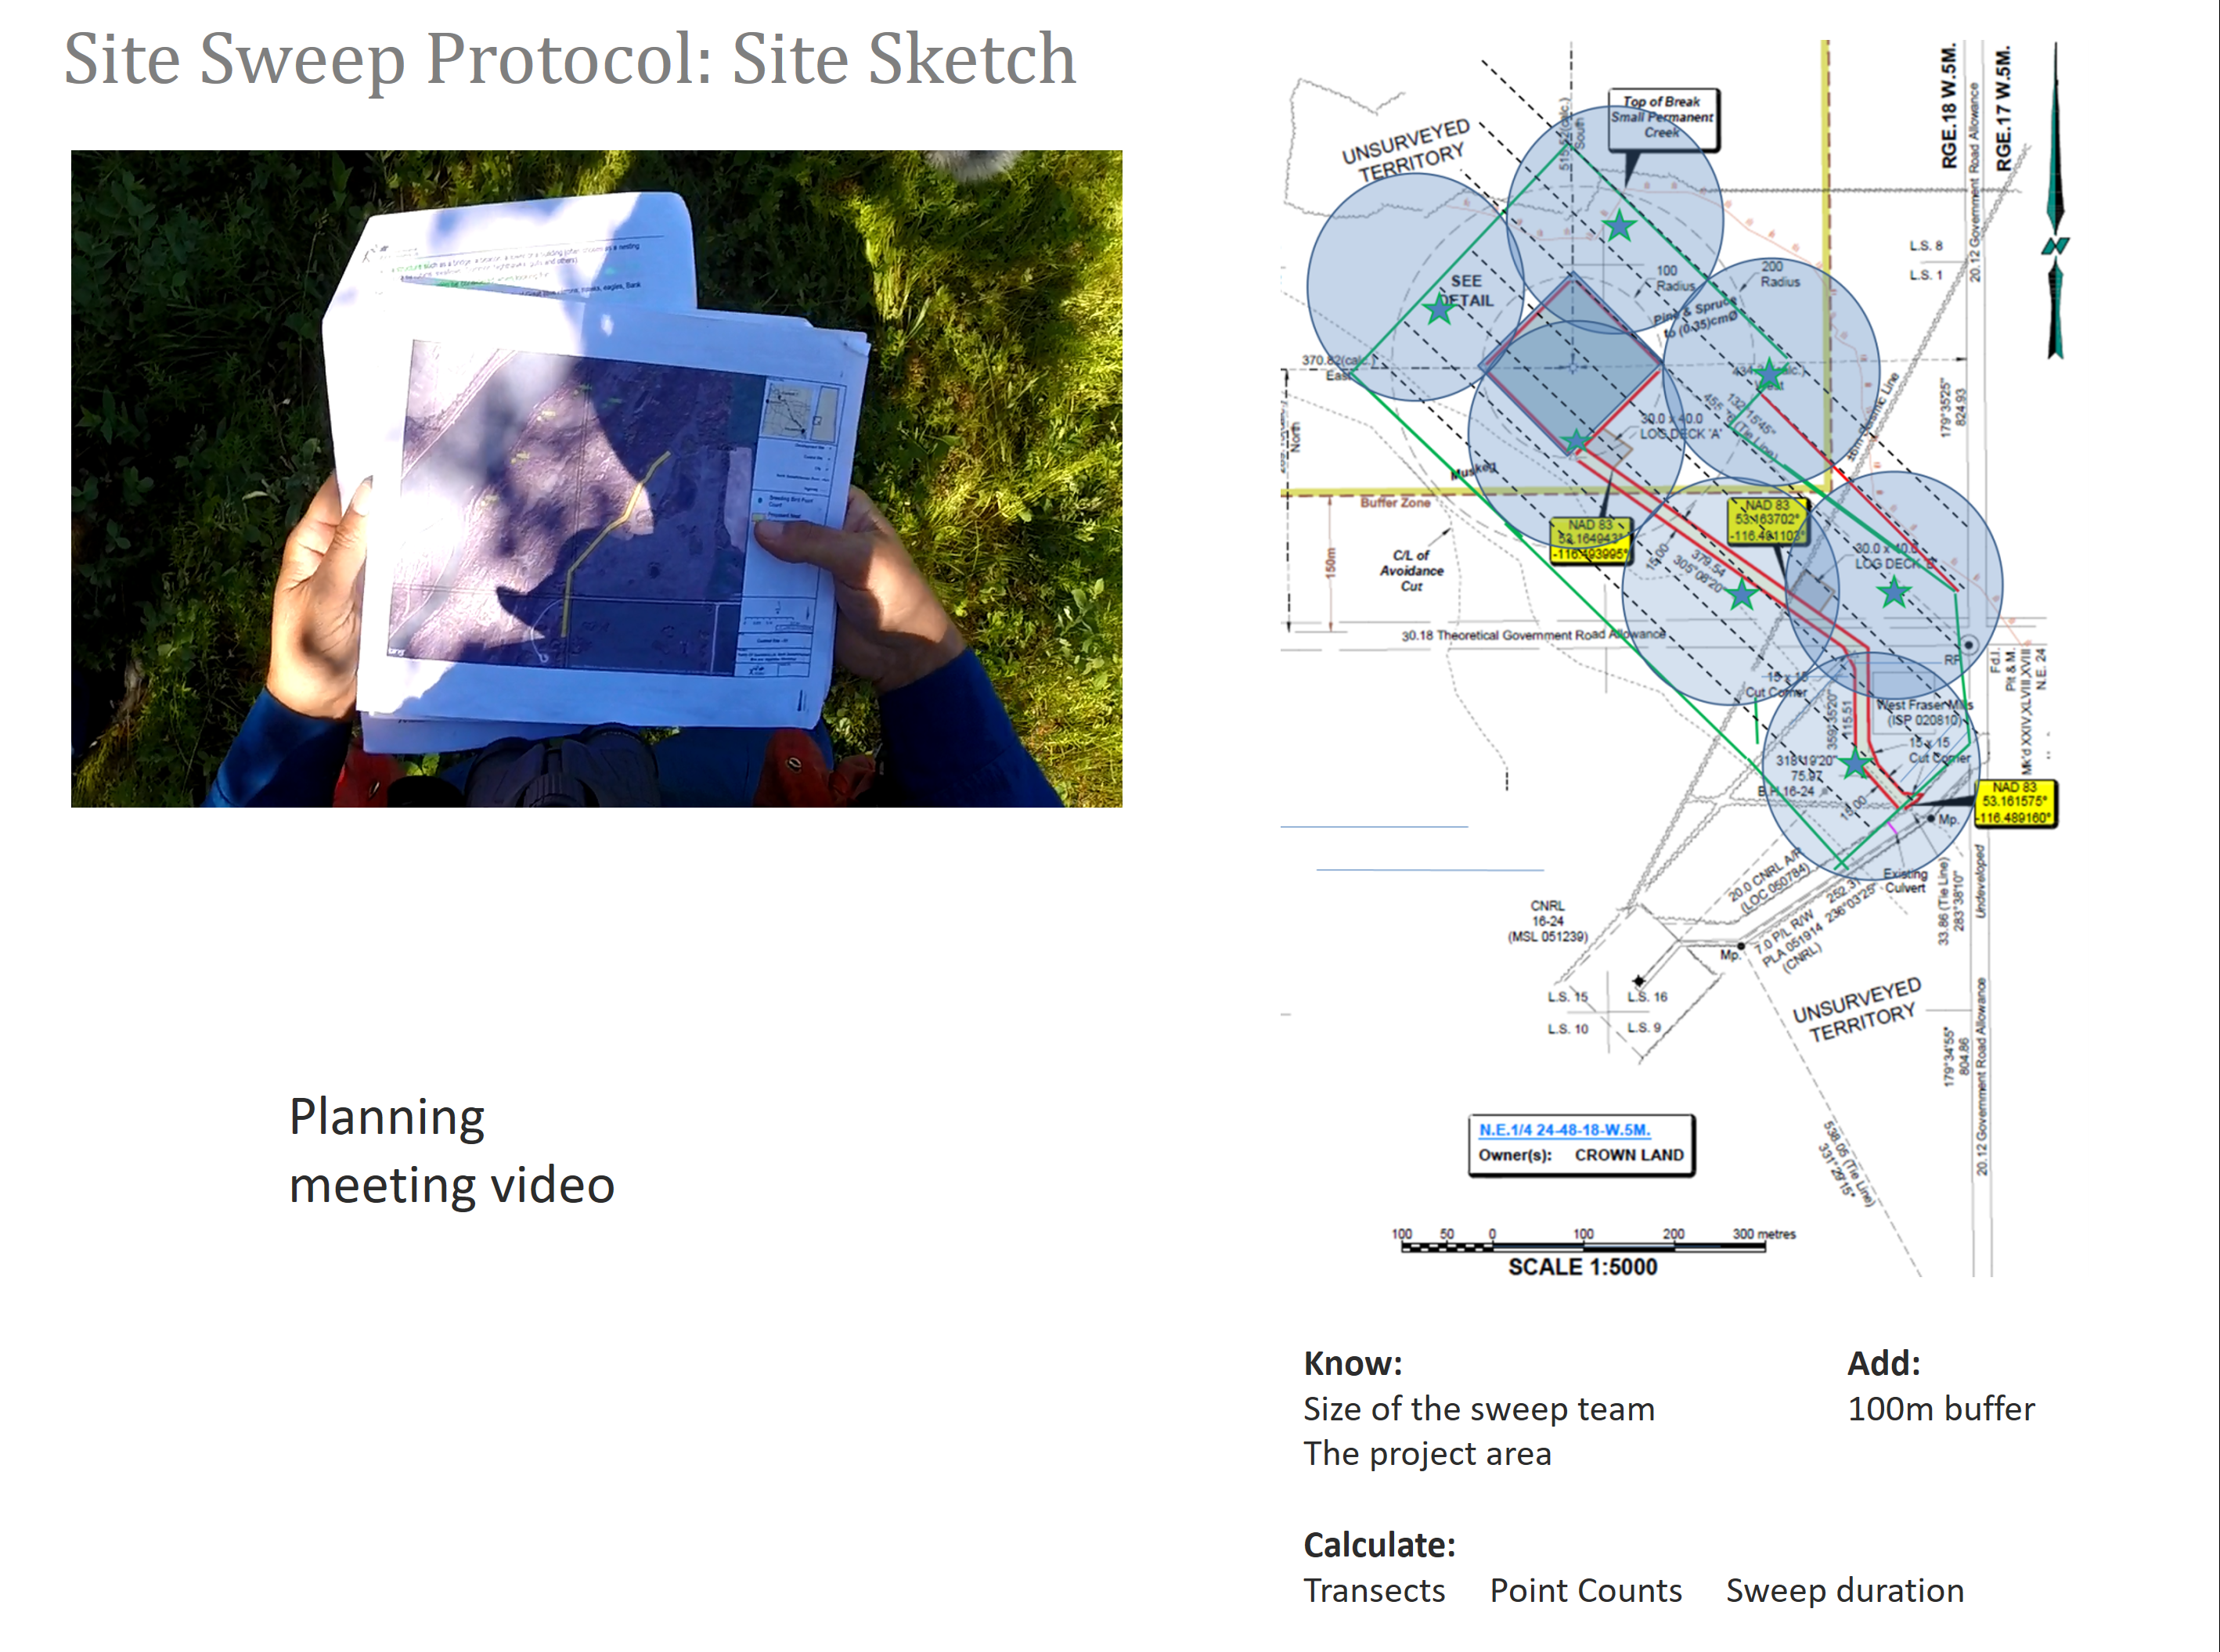 The slide shows a photograph of a person handling documents, a site sketch and a video placeholder all on one slide.